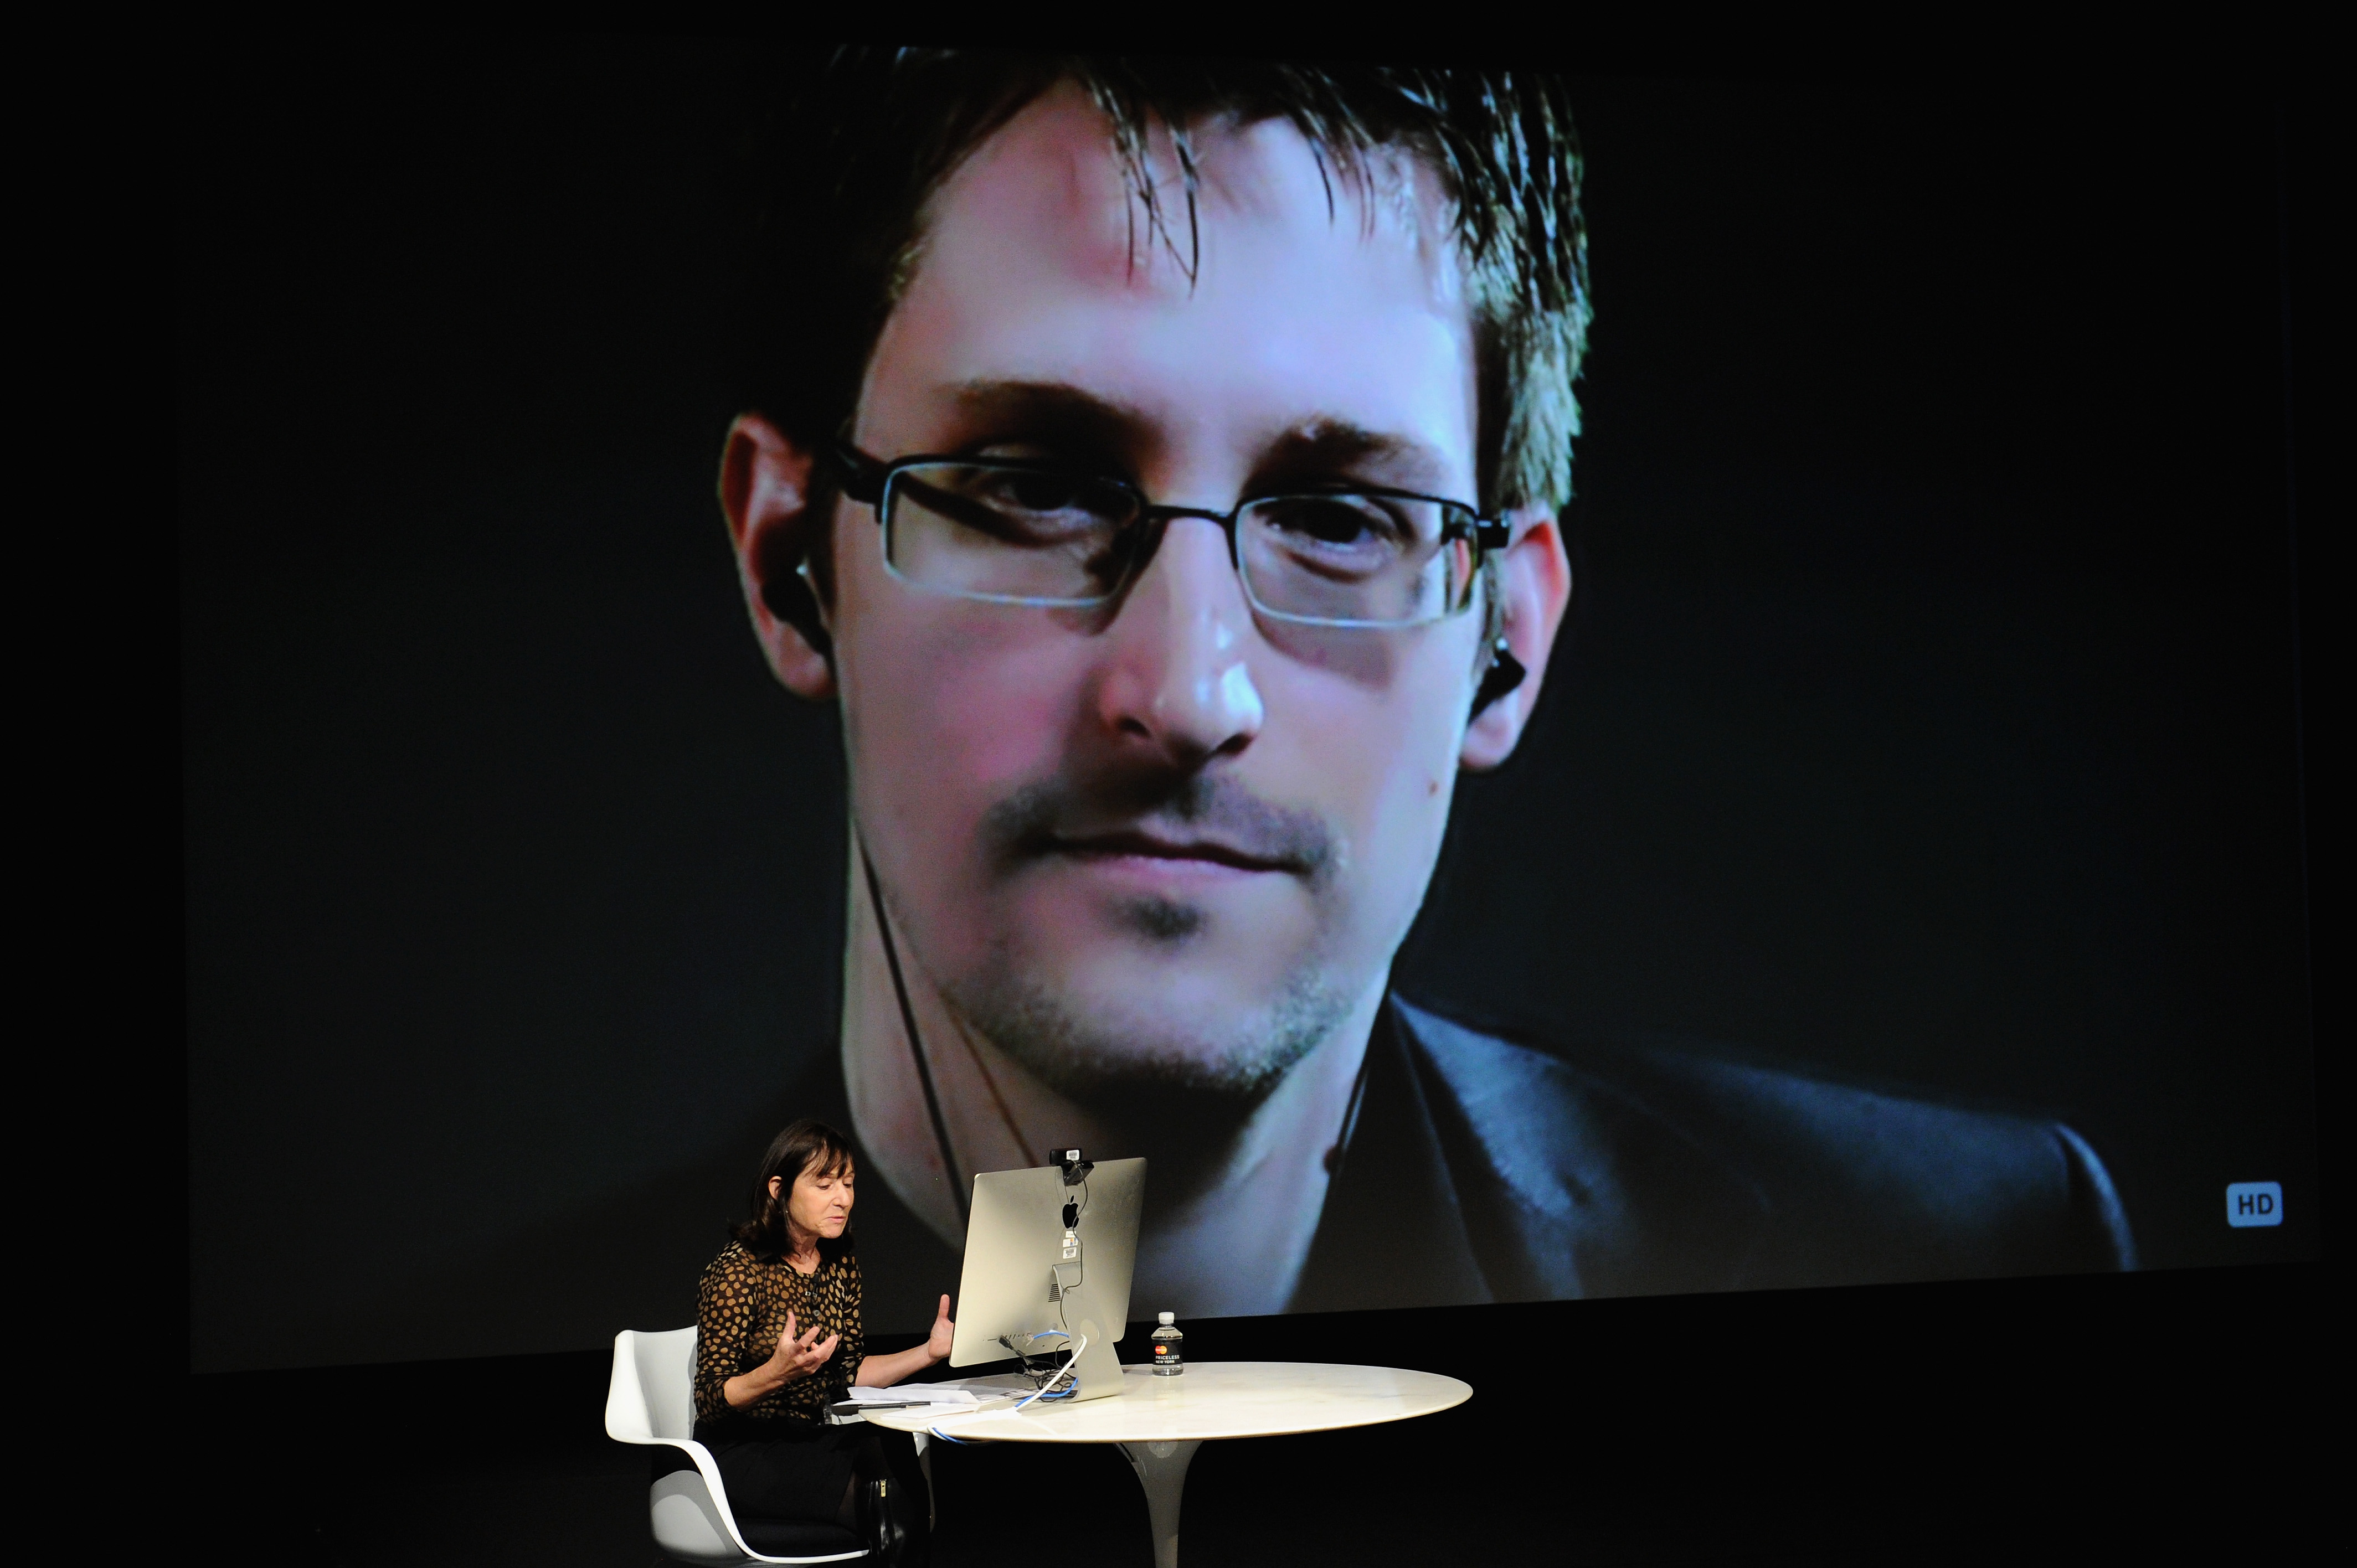 General view of atmosphere at the Edward Snowden Interviewed by Jane Mayer at the MasterCard stage at SVA Theatre during The New Yorker Festival 2014 on October 11, 2014 in New York City.